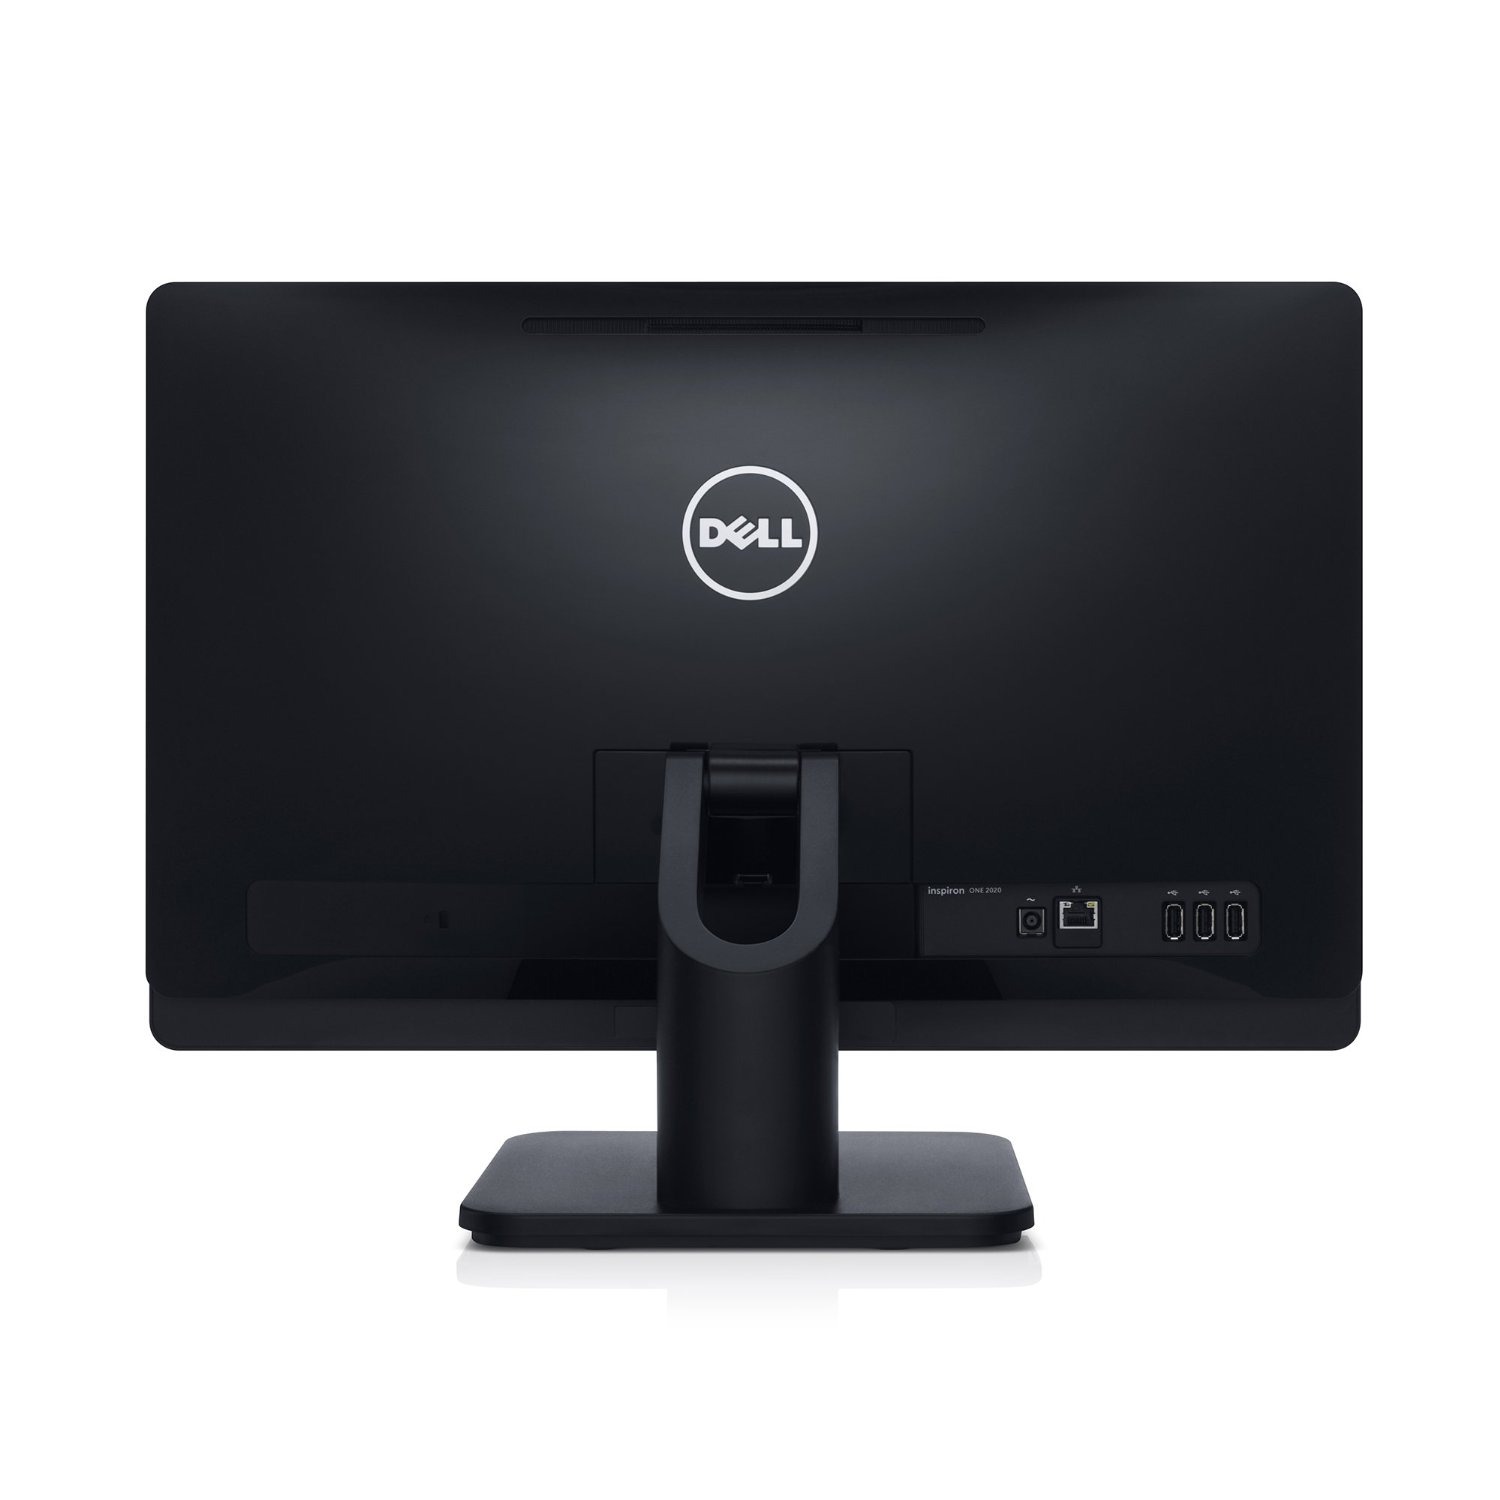 dell inspiron 20 touchscreen all in one desktop 4gb 500gb io2020 4668bk. Black Bedroom Furniture Sets. Home Design Ideas